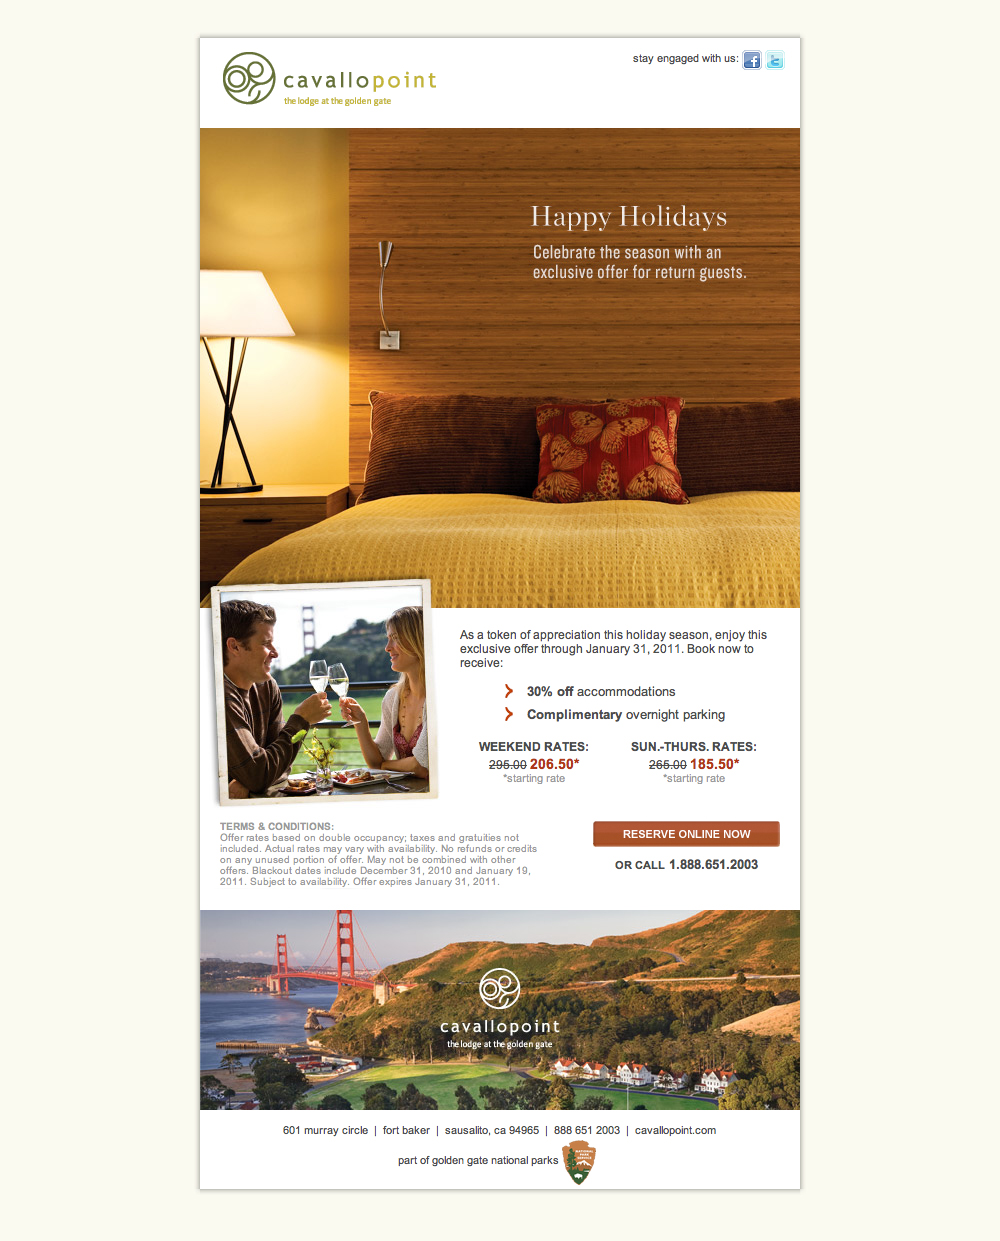 campañas email marketing como herramienta de marketing online para hoteles, hostales y casas rurales